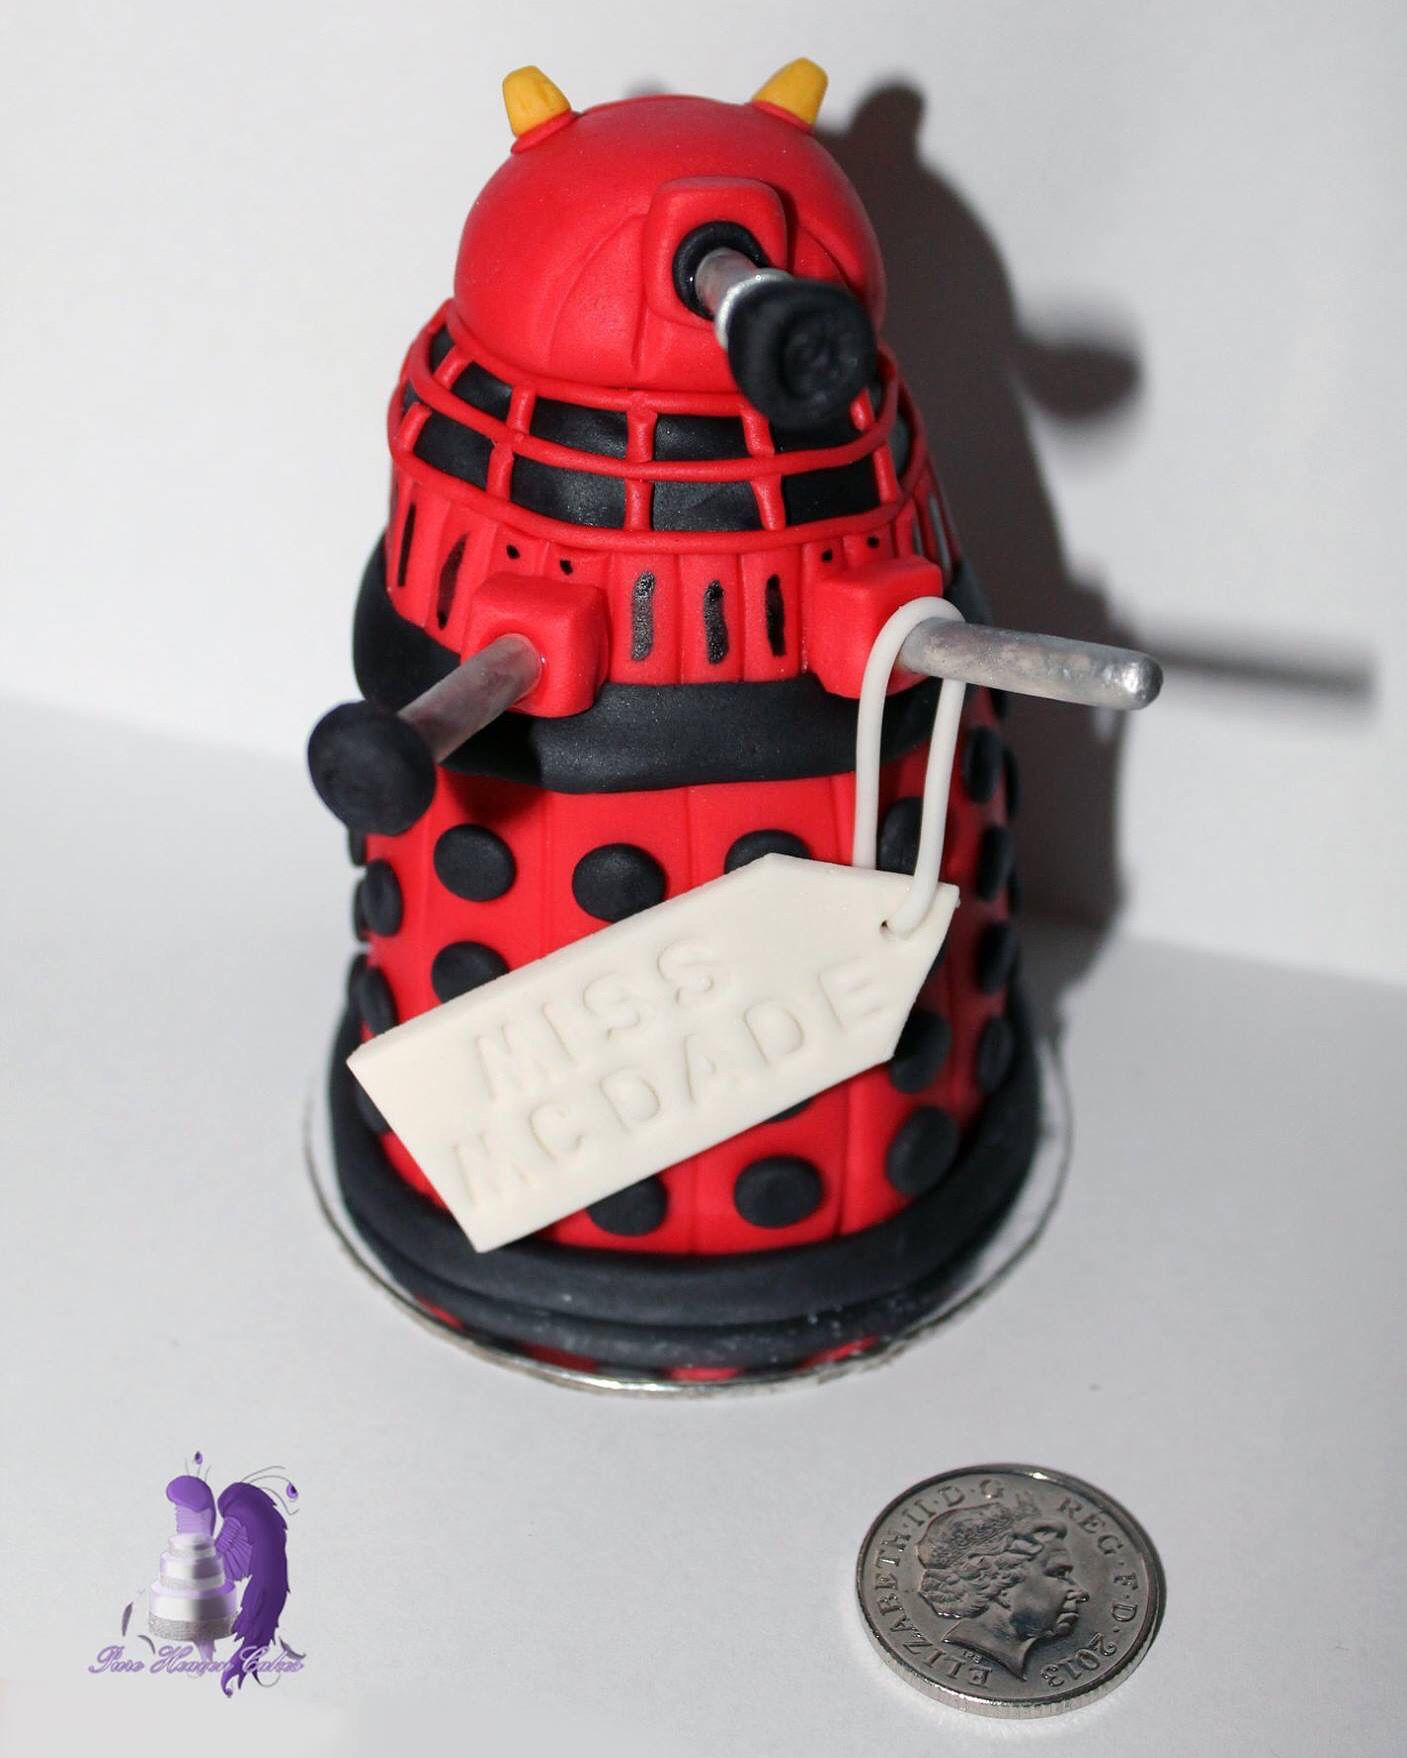 Mini dalek cake 10p for size reference this was a teachers thank mini dalek cake 10p for size reference this was a teachers thank you negle Image collections